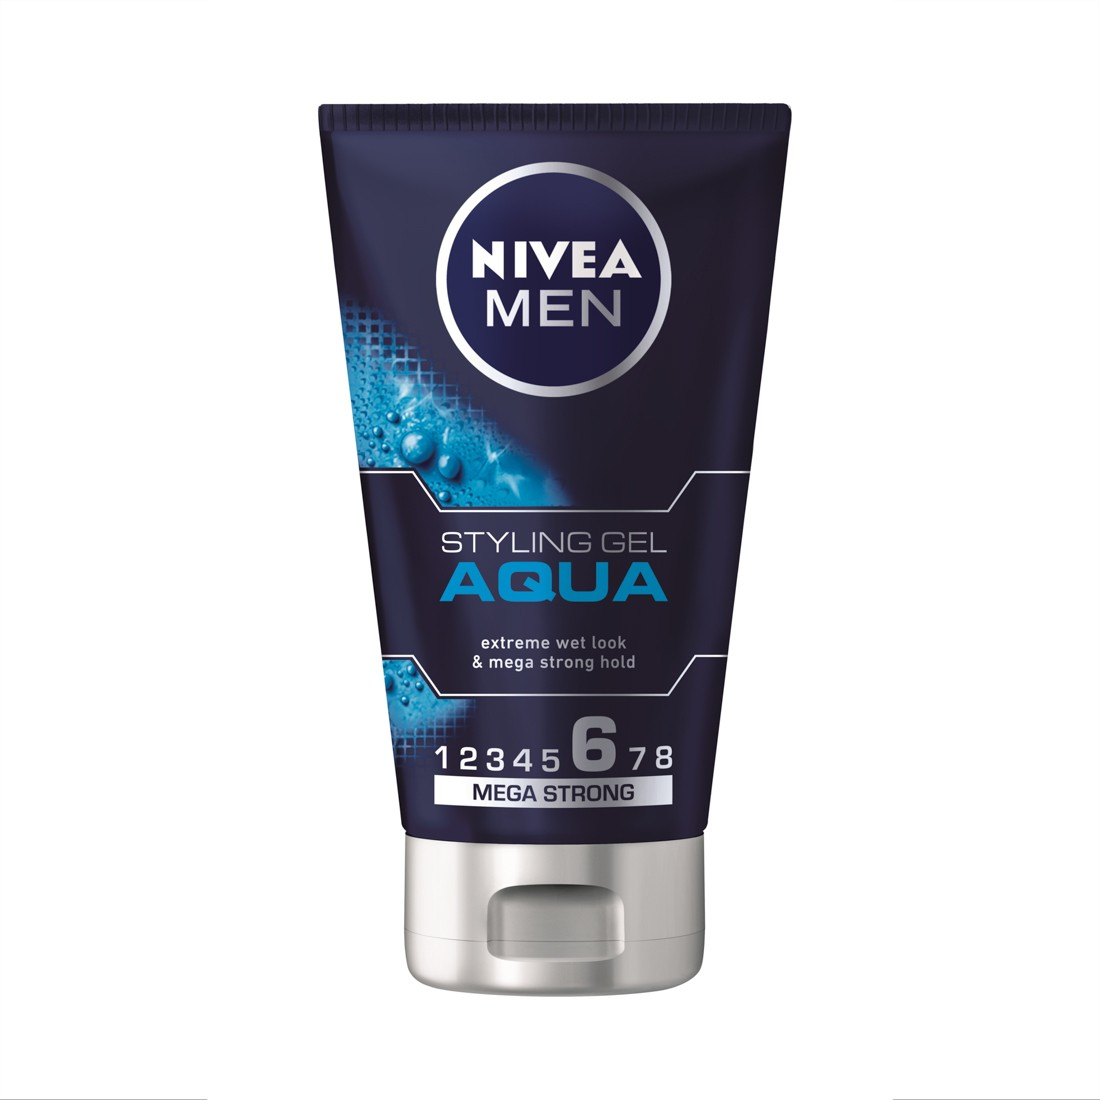 Nivea Men Styling Gel Aqua Τζελ για Wet Look 150ml